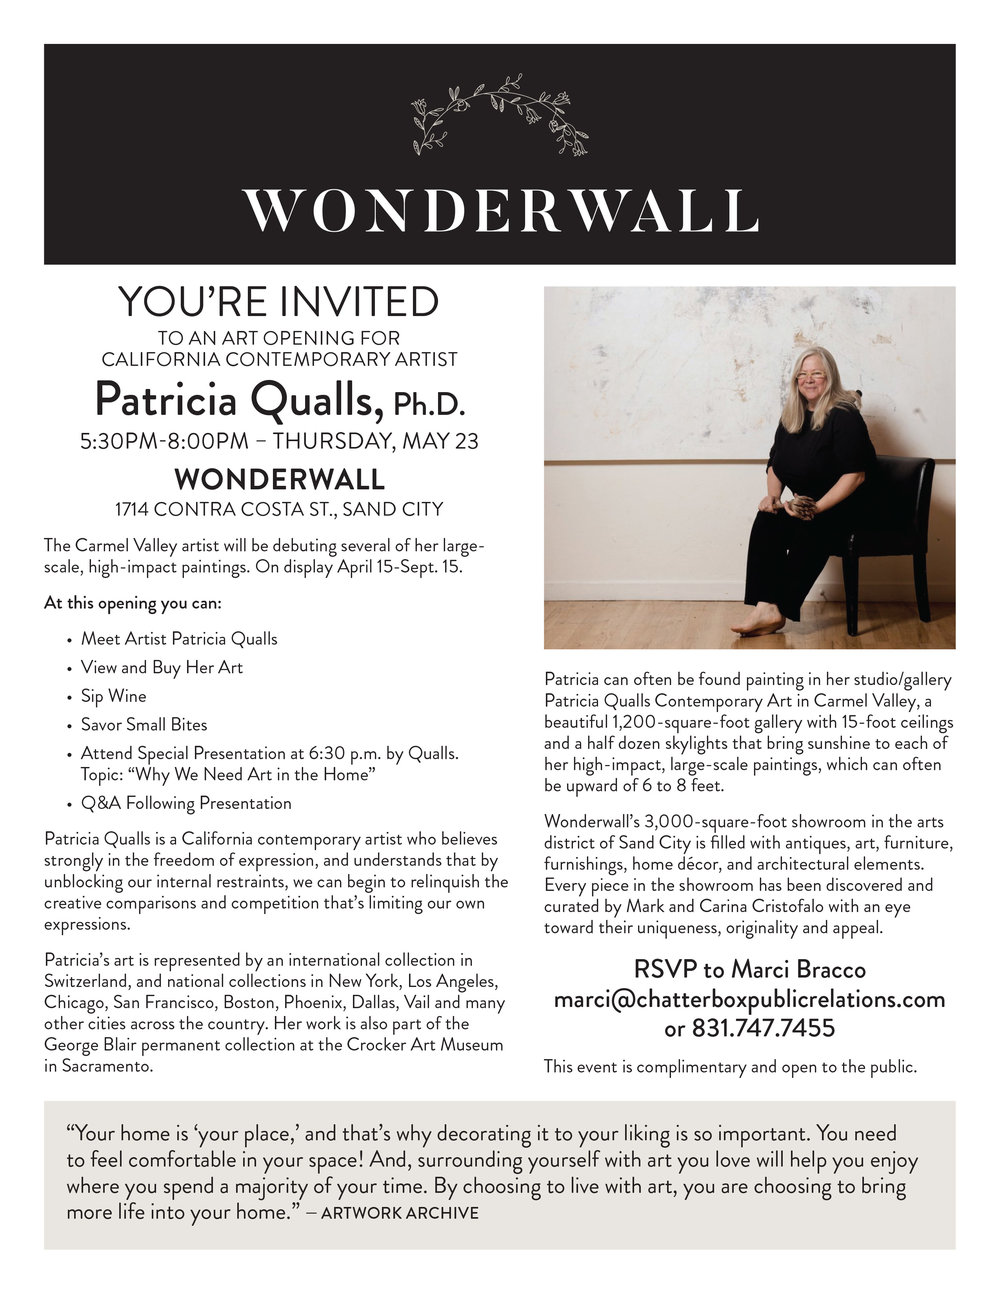 WW-patricia-qualls-flyer-R2-approved.jpg